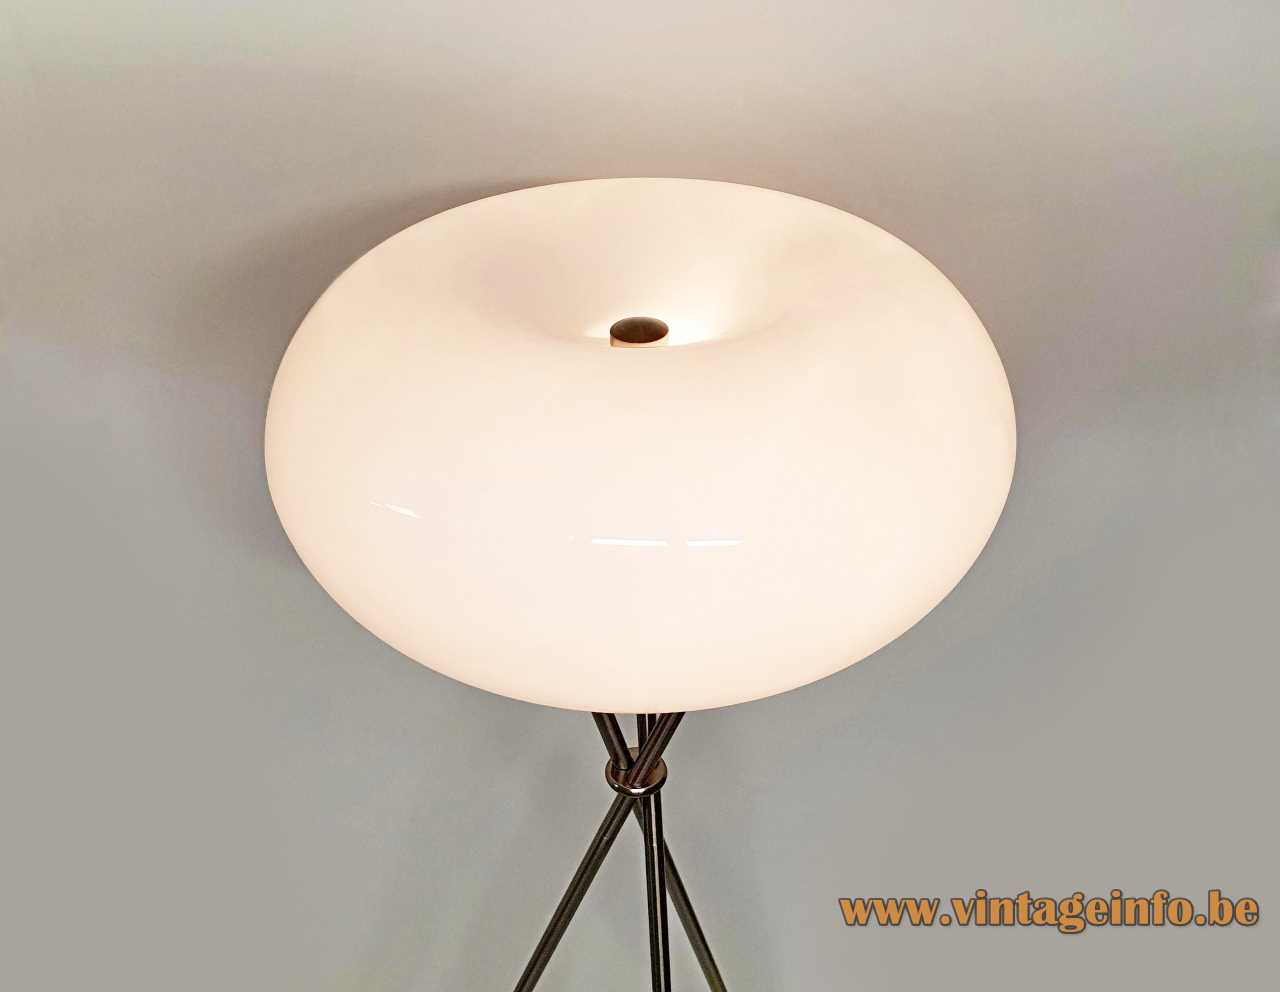 TRIO Leuchten Olympic floor lamp chrome tripod base white oval glass globe lampshade 1990s 2000s Germany